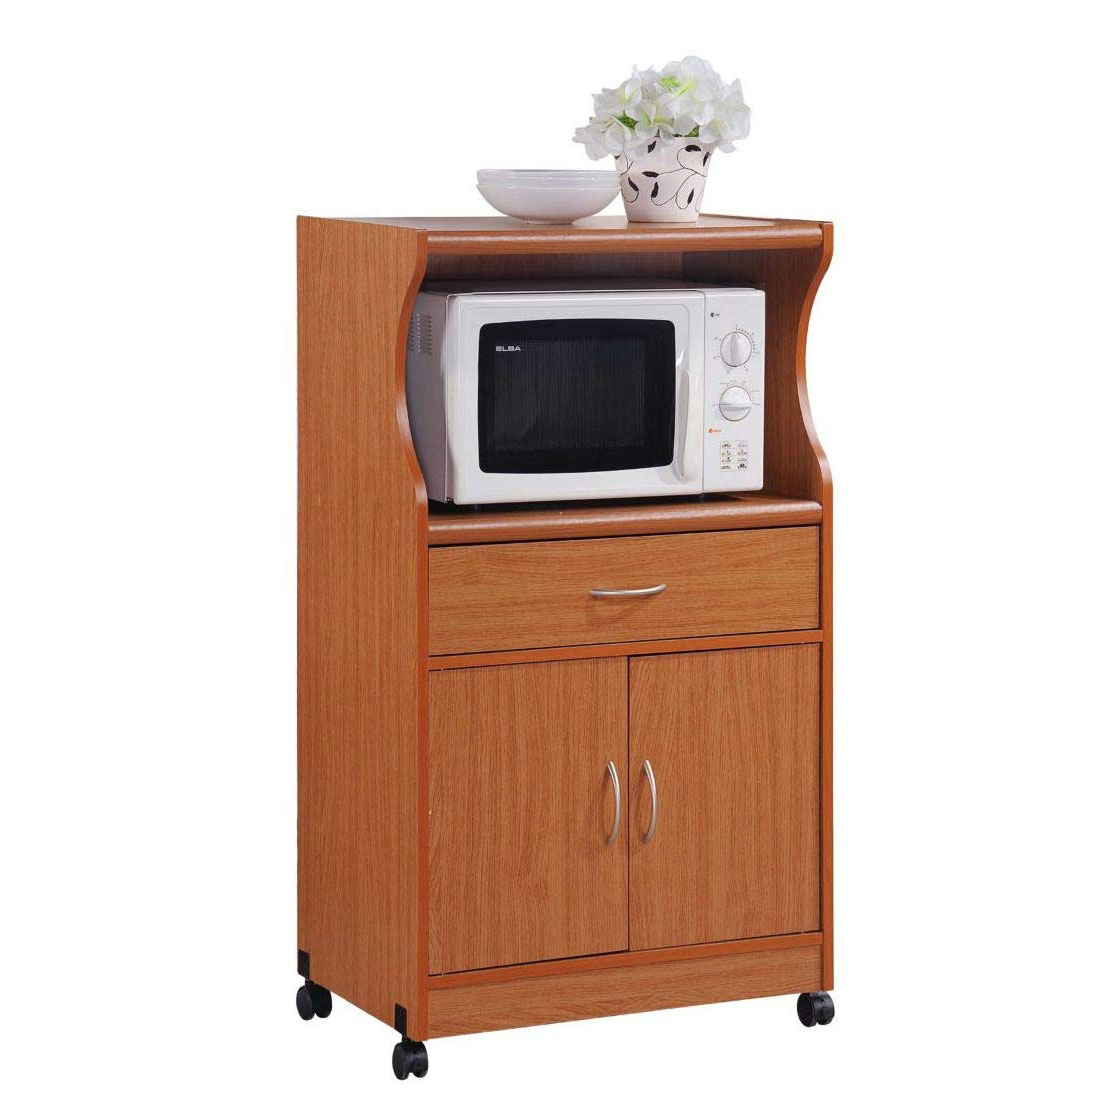 Hodedah Wheeled Kitchen Cart with Drawer and Cabinet ...